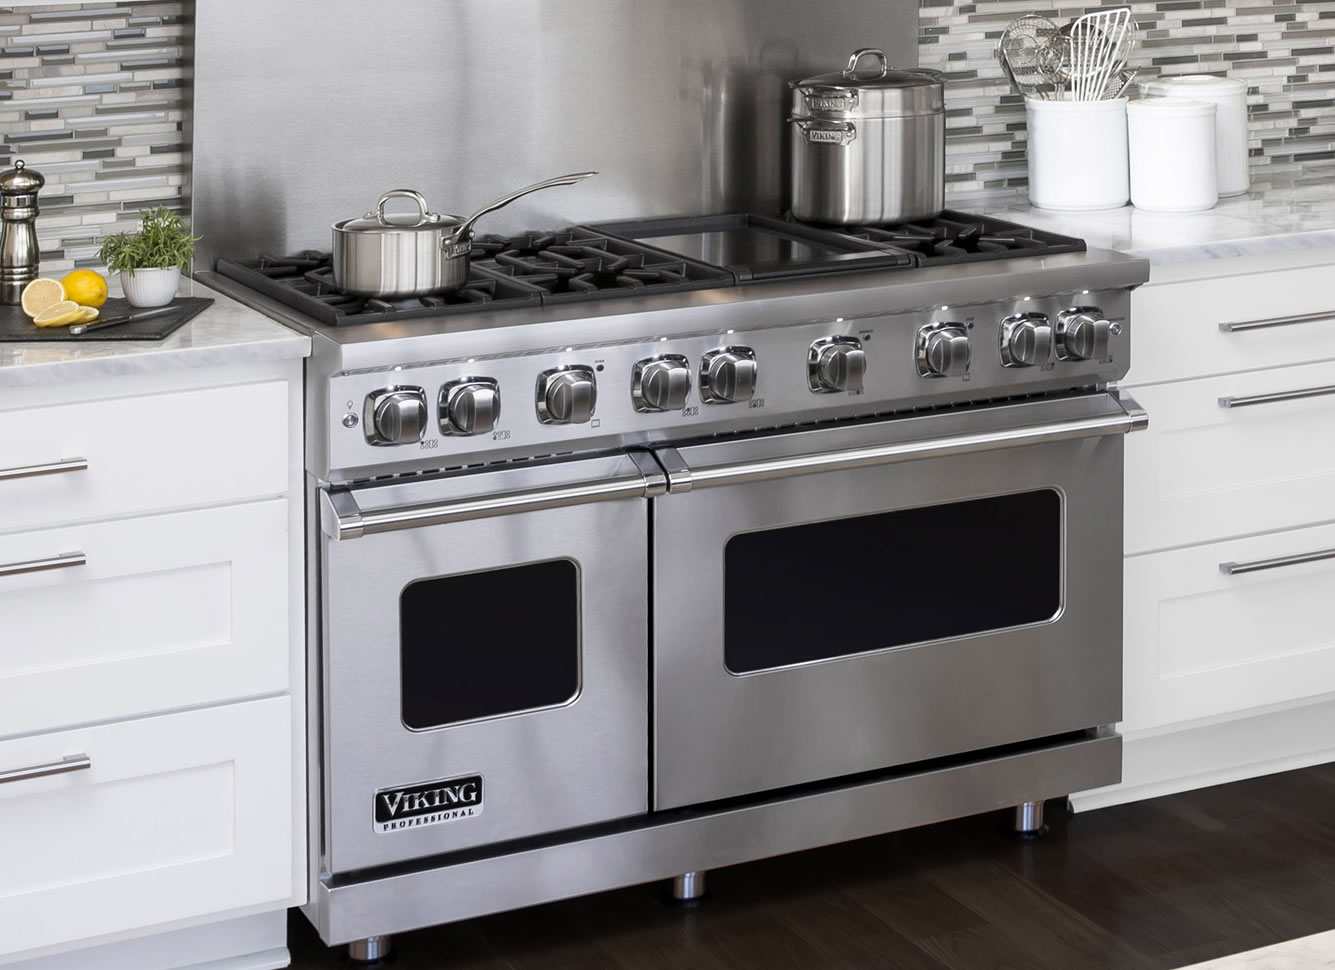 viking y idevices lanzan cocinas con term metros que se